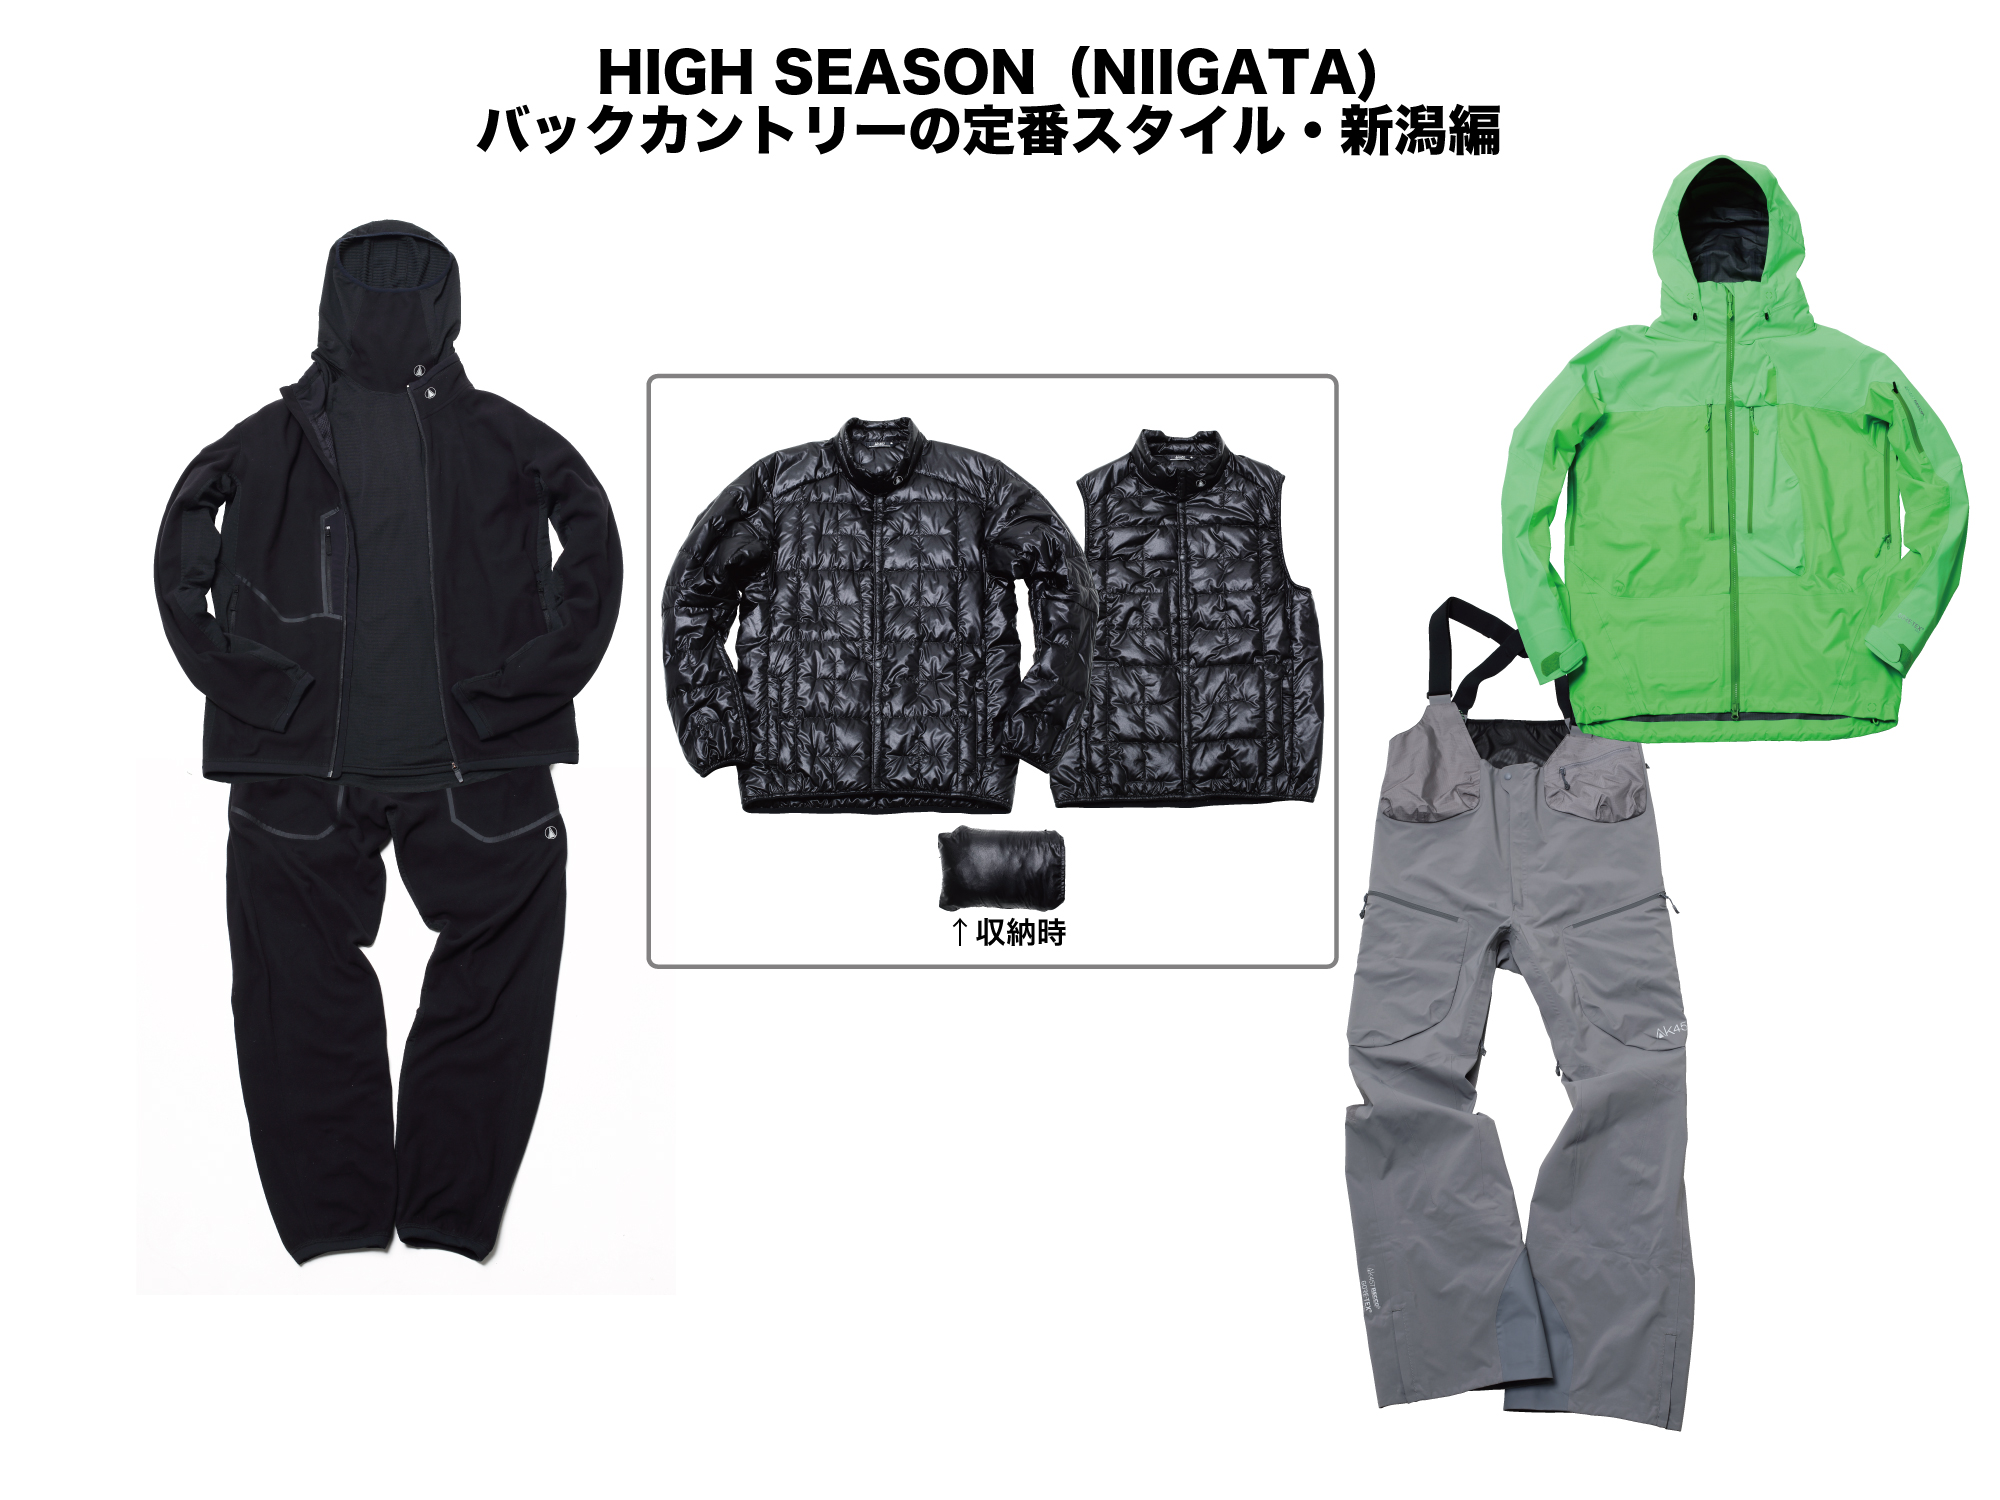 (上)(INNER)BASE LAYER HI NECK FLEECE:¥18,000+MICRO FLEECE JACKET:¥34,000 ++PACKABLE DOWN JACKET :¥46,000/VEST:¥38,000 (OUTER)GUIDE JACKET:¥89,000 (下)(INNER)MICRO FLEECE PANT:¥34,000 (OUTER)HI-TOP PANT:¥79,000